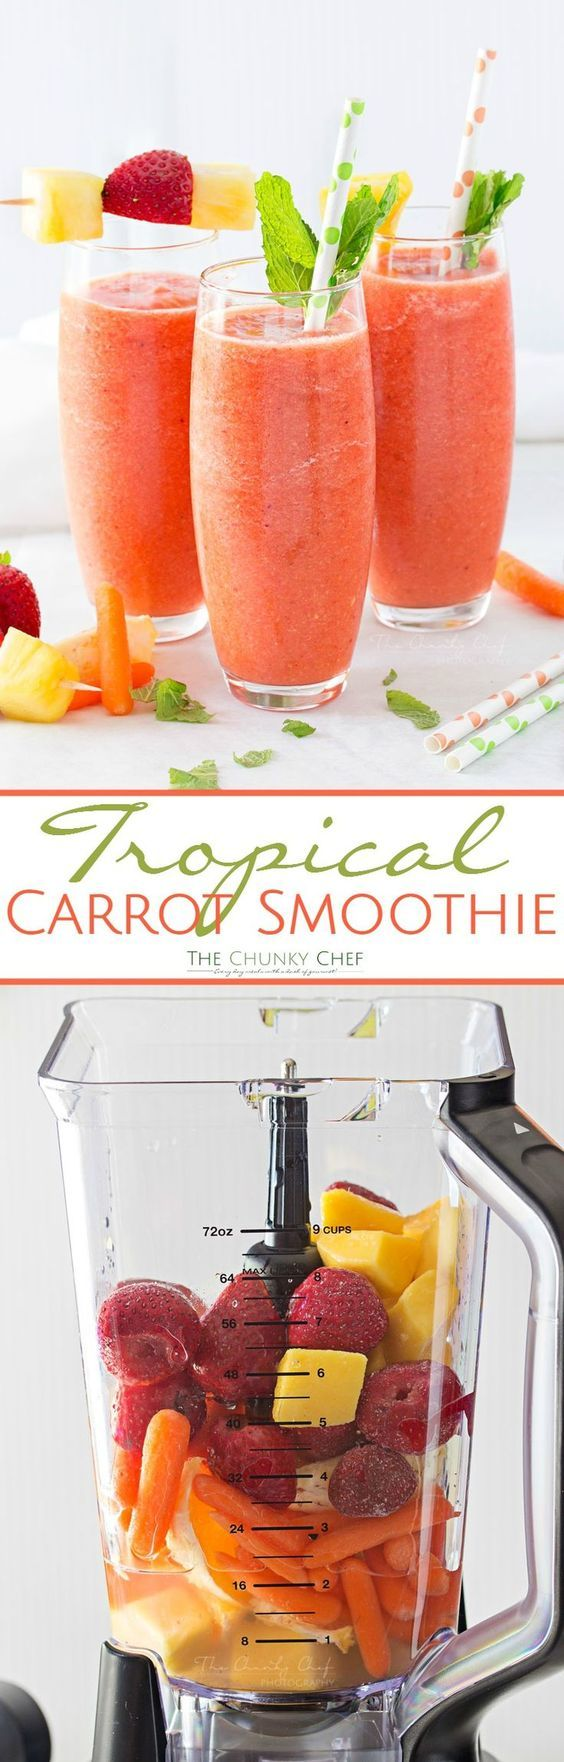 Tropical Carrot Smoothie | This simple to make carrot smoothie is bursting with tropical flavors and is so full of nutrients... healthy never tasted so good! | http://thechunkychef.com